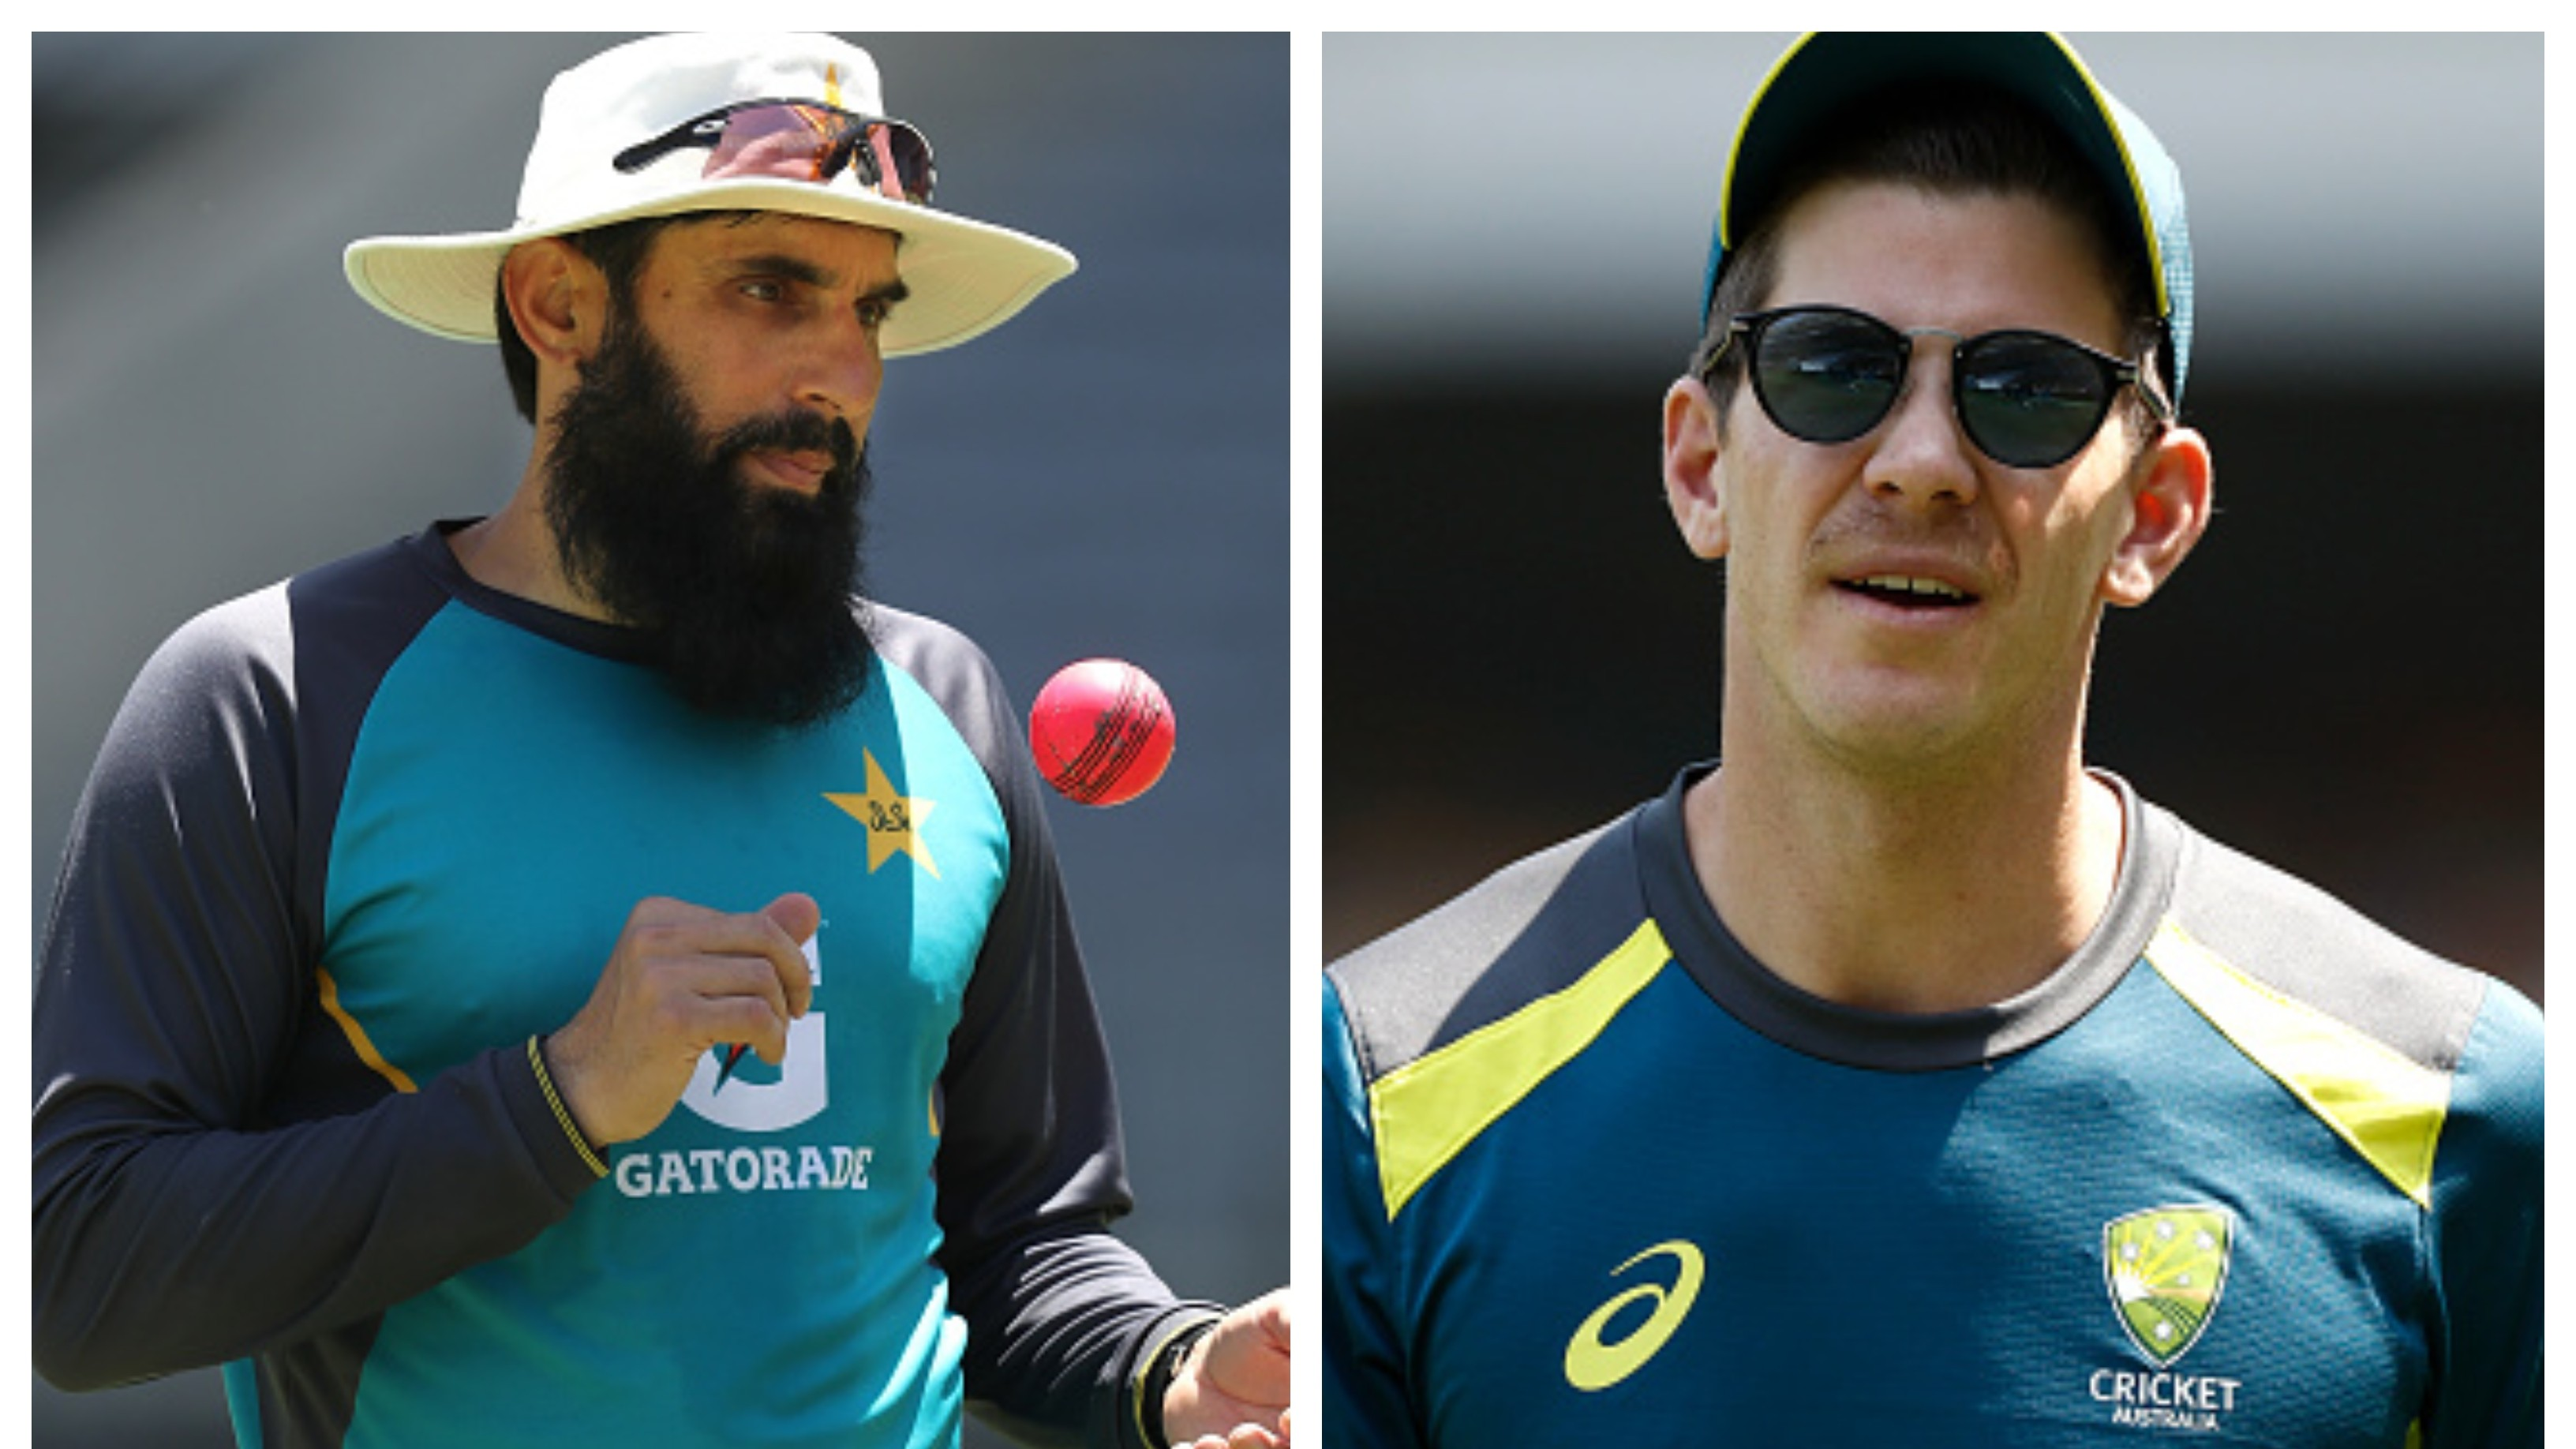 AUS v PAK 2019: Pakistan ready to fight fire with fire in Brisbane against Australia